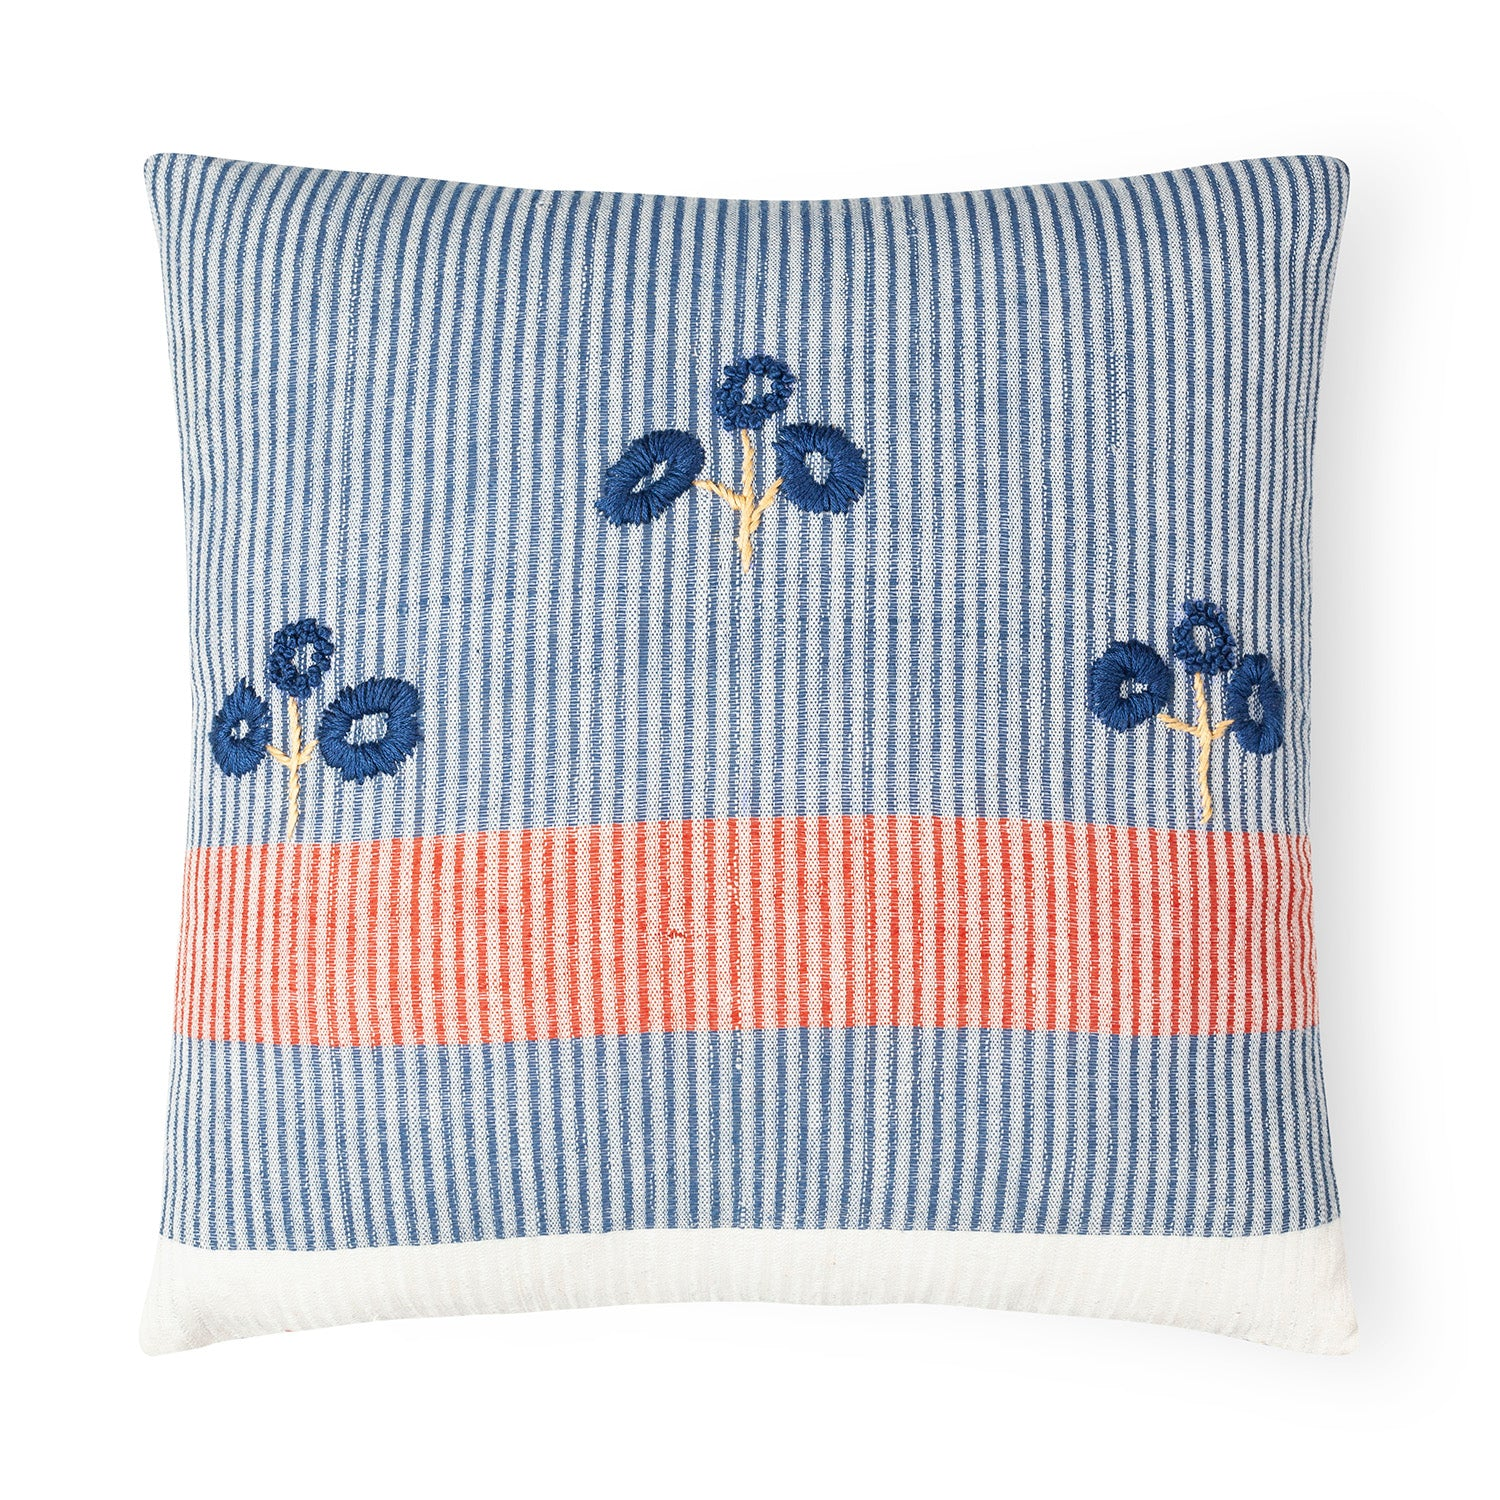 Handwoven & Embroidered Cotton Cushion - 14""